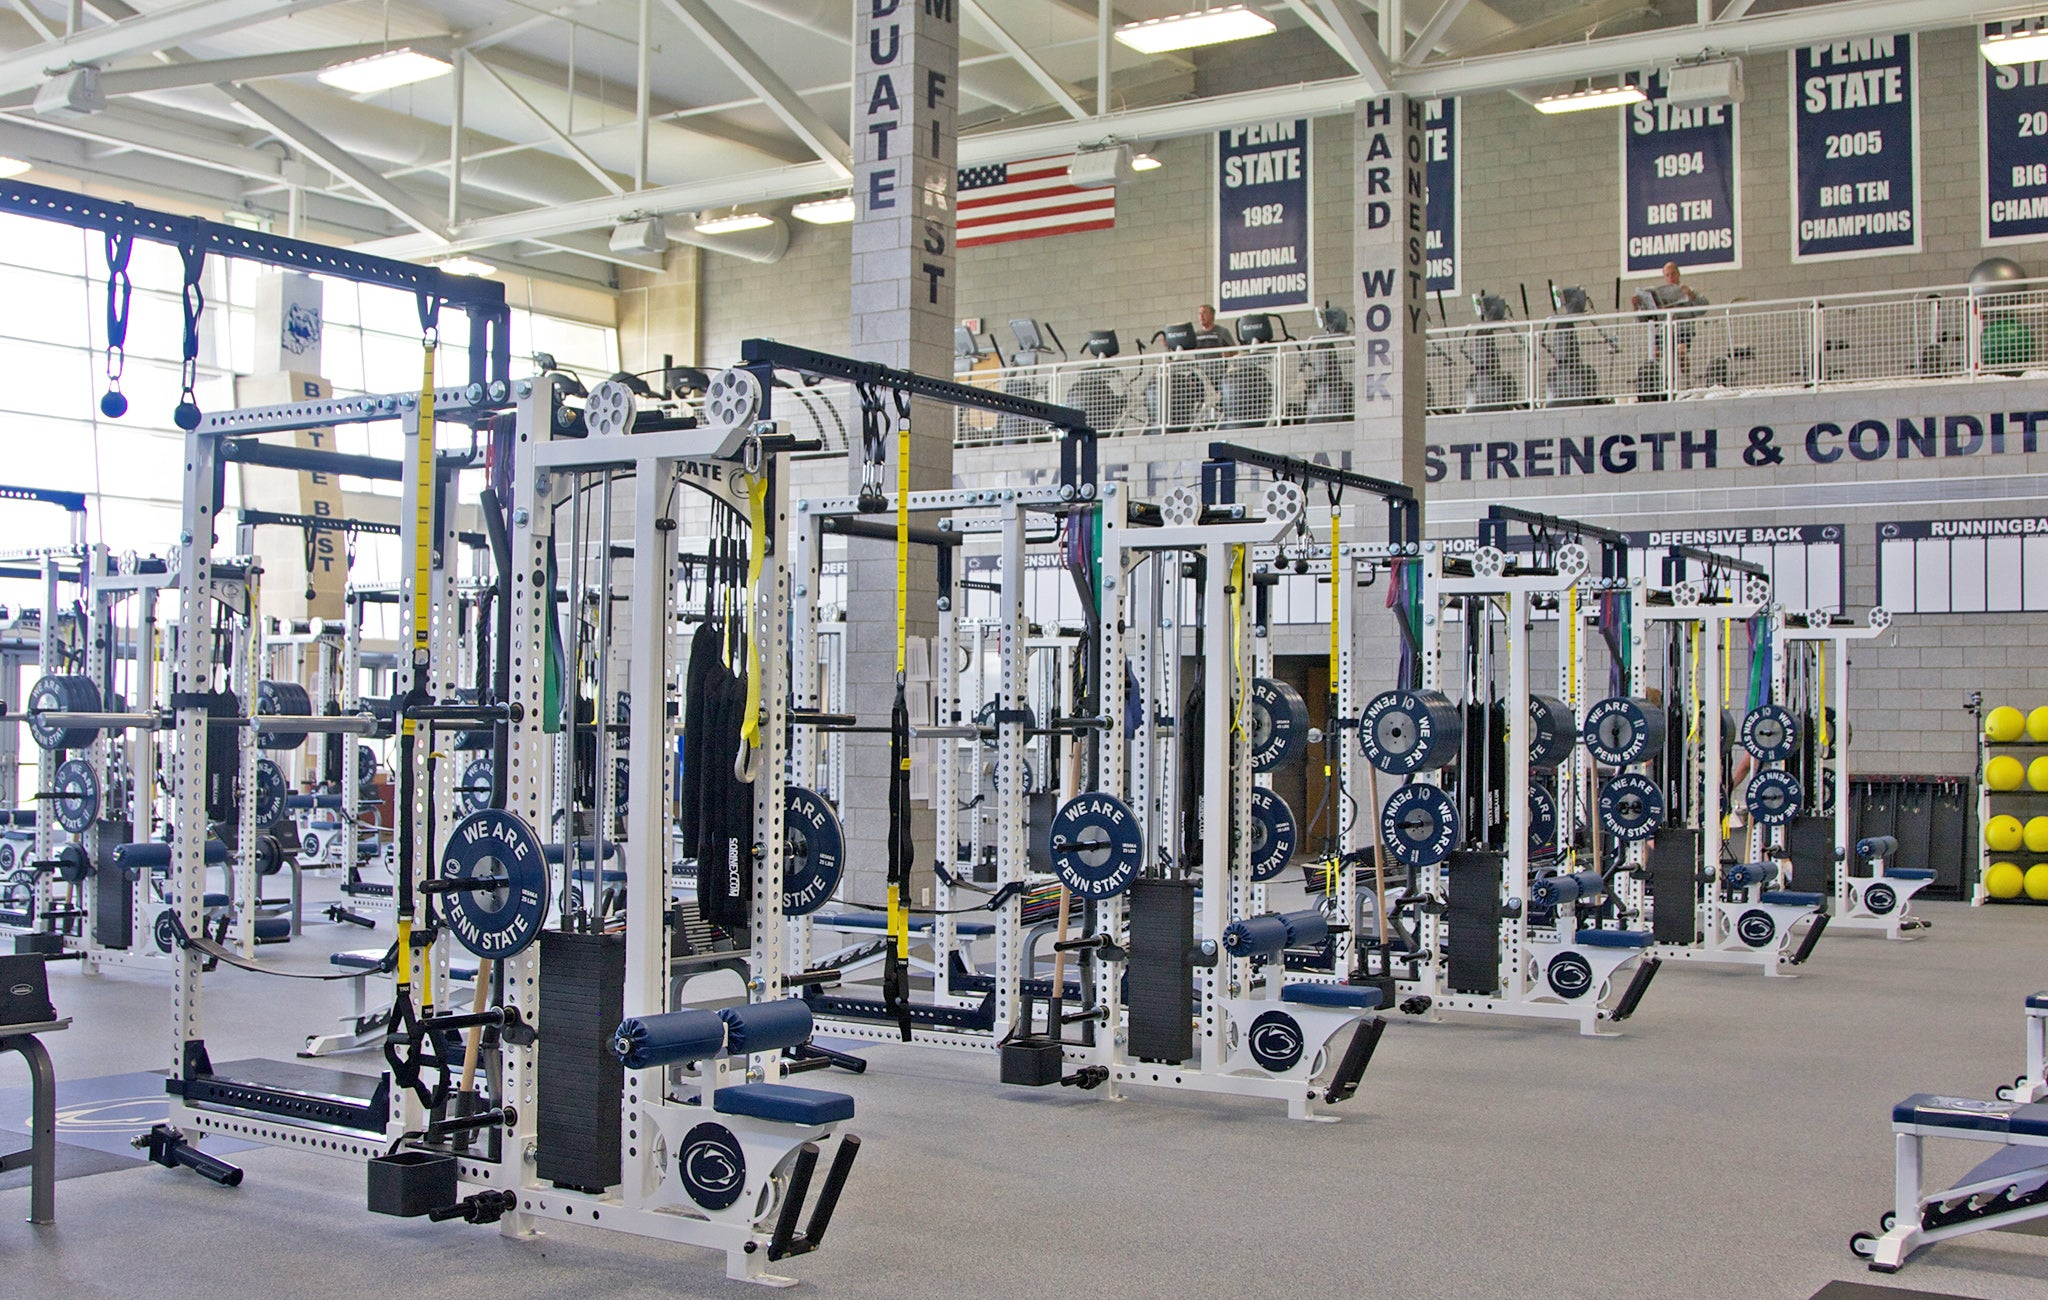 Penn State Football strength training facility